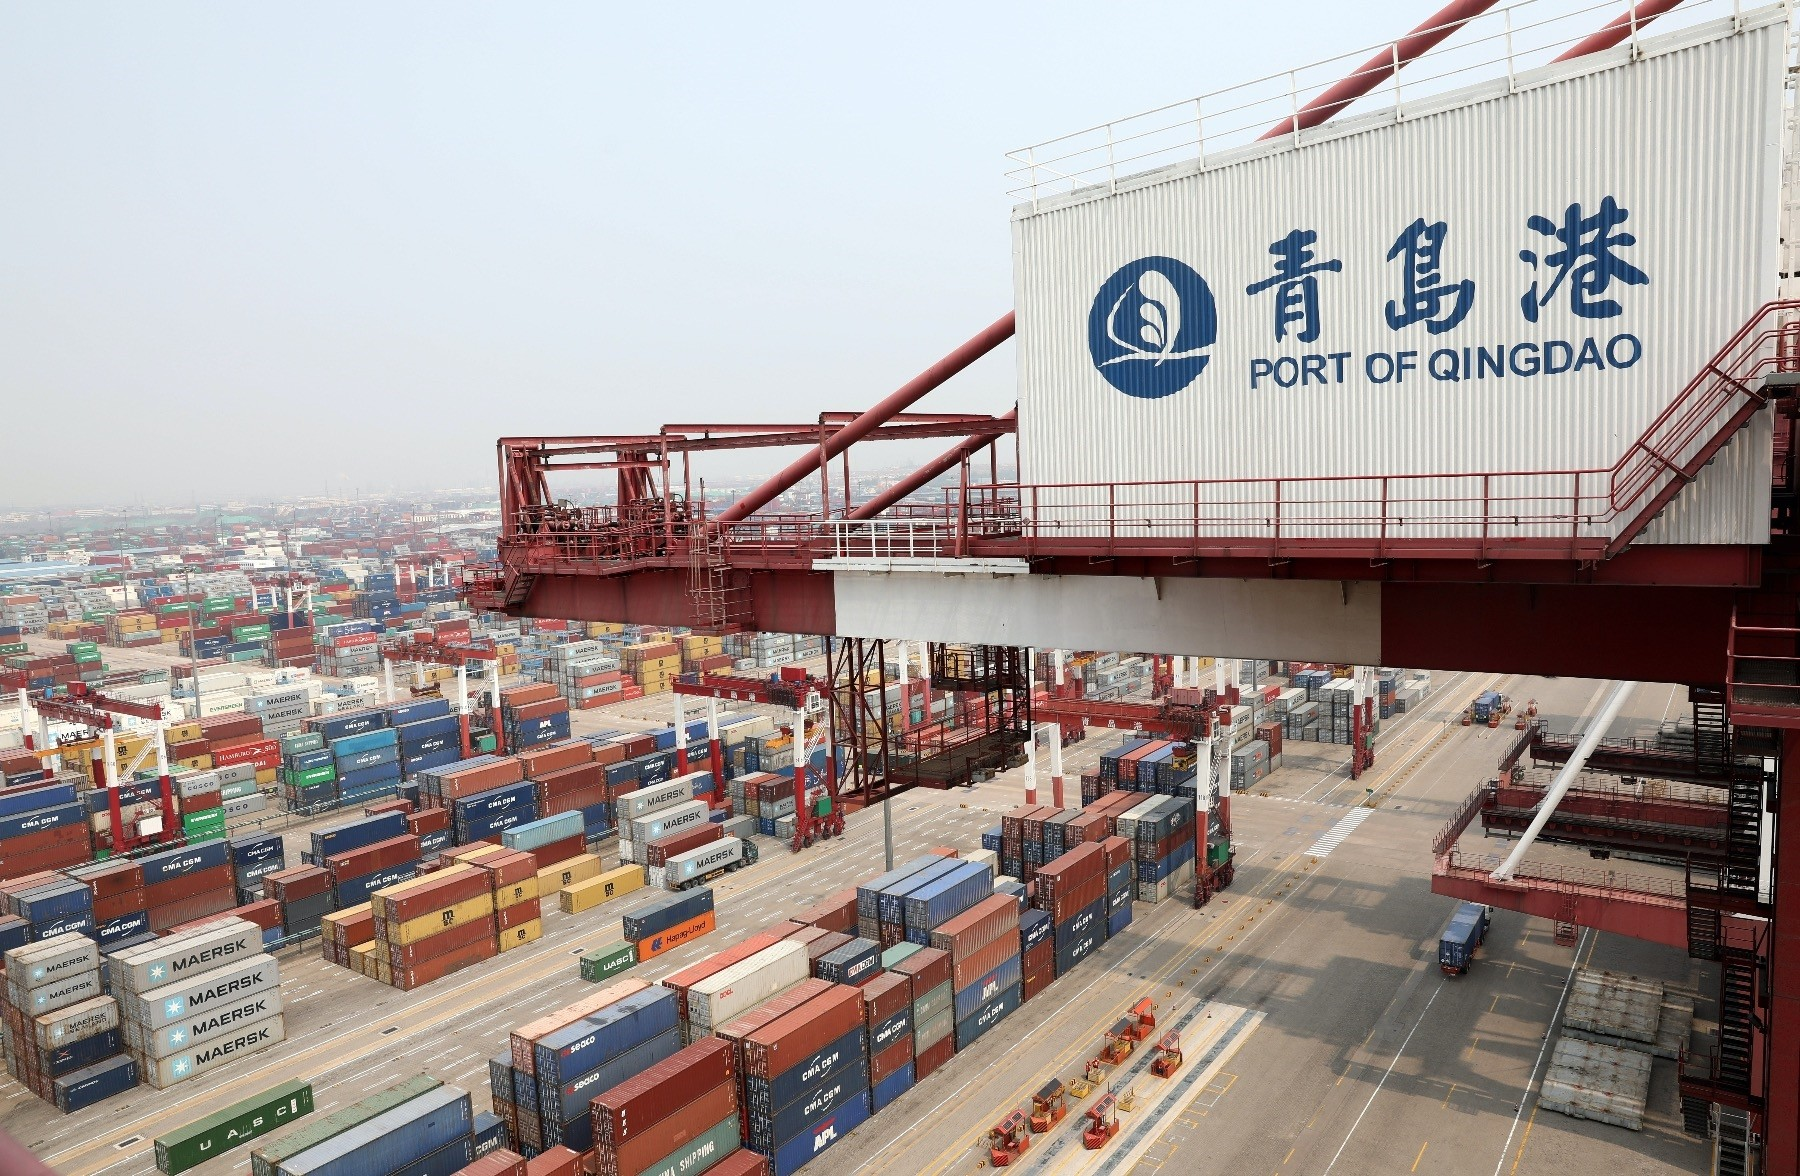 A view Qingdao port located in China's Shandong province.